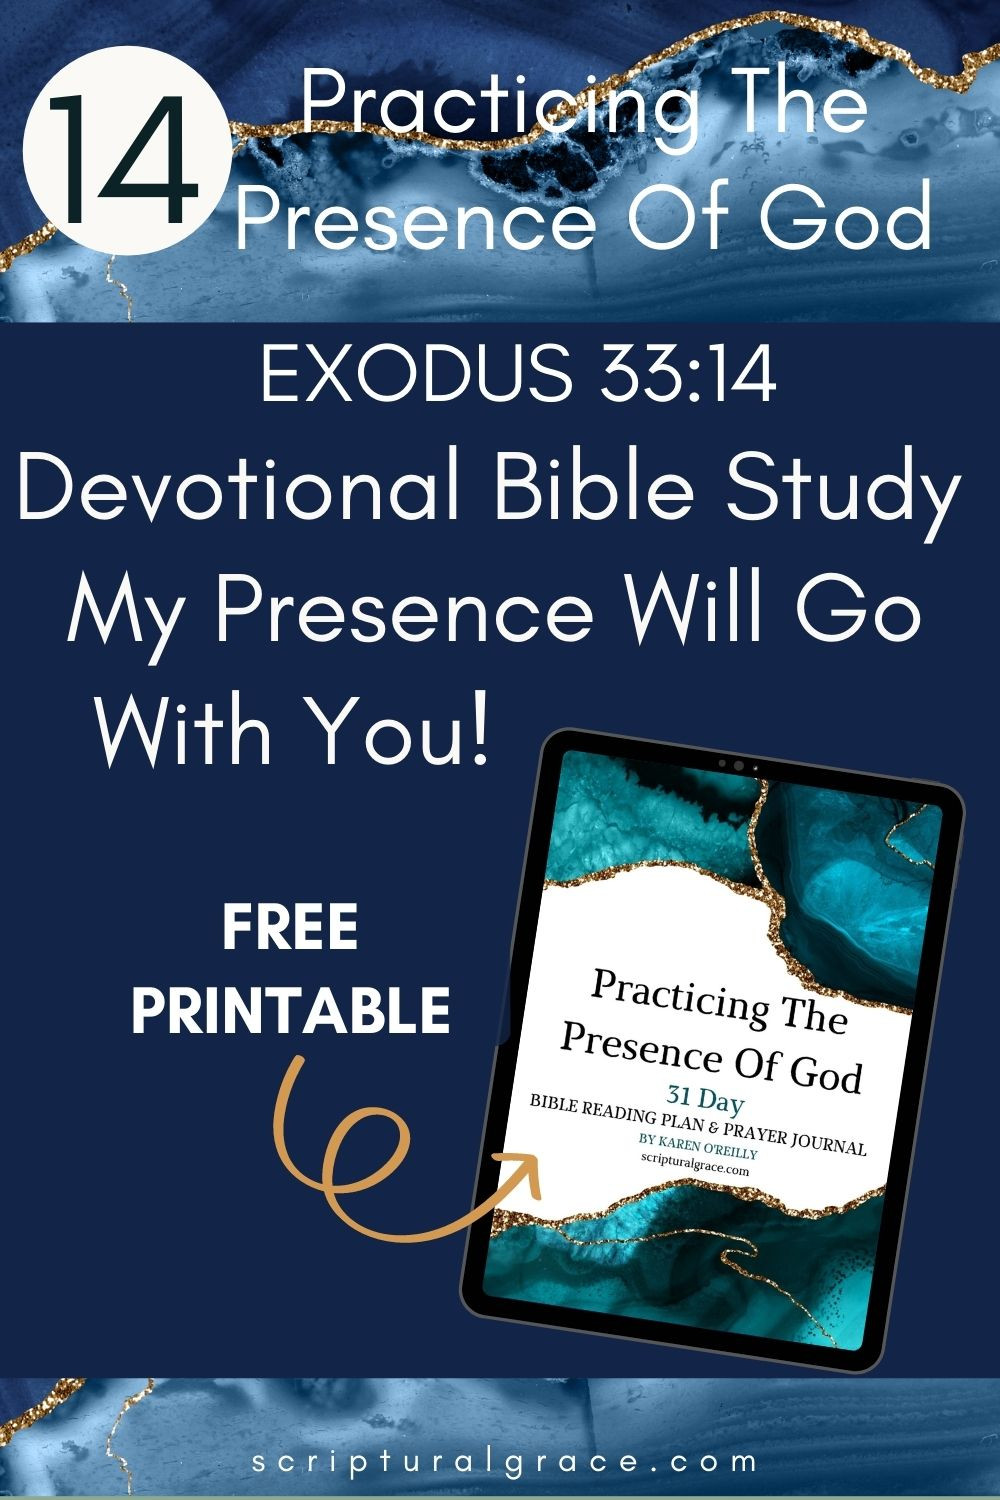 My presence will go with you Exodus 33 14 devotional bible study free printable